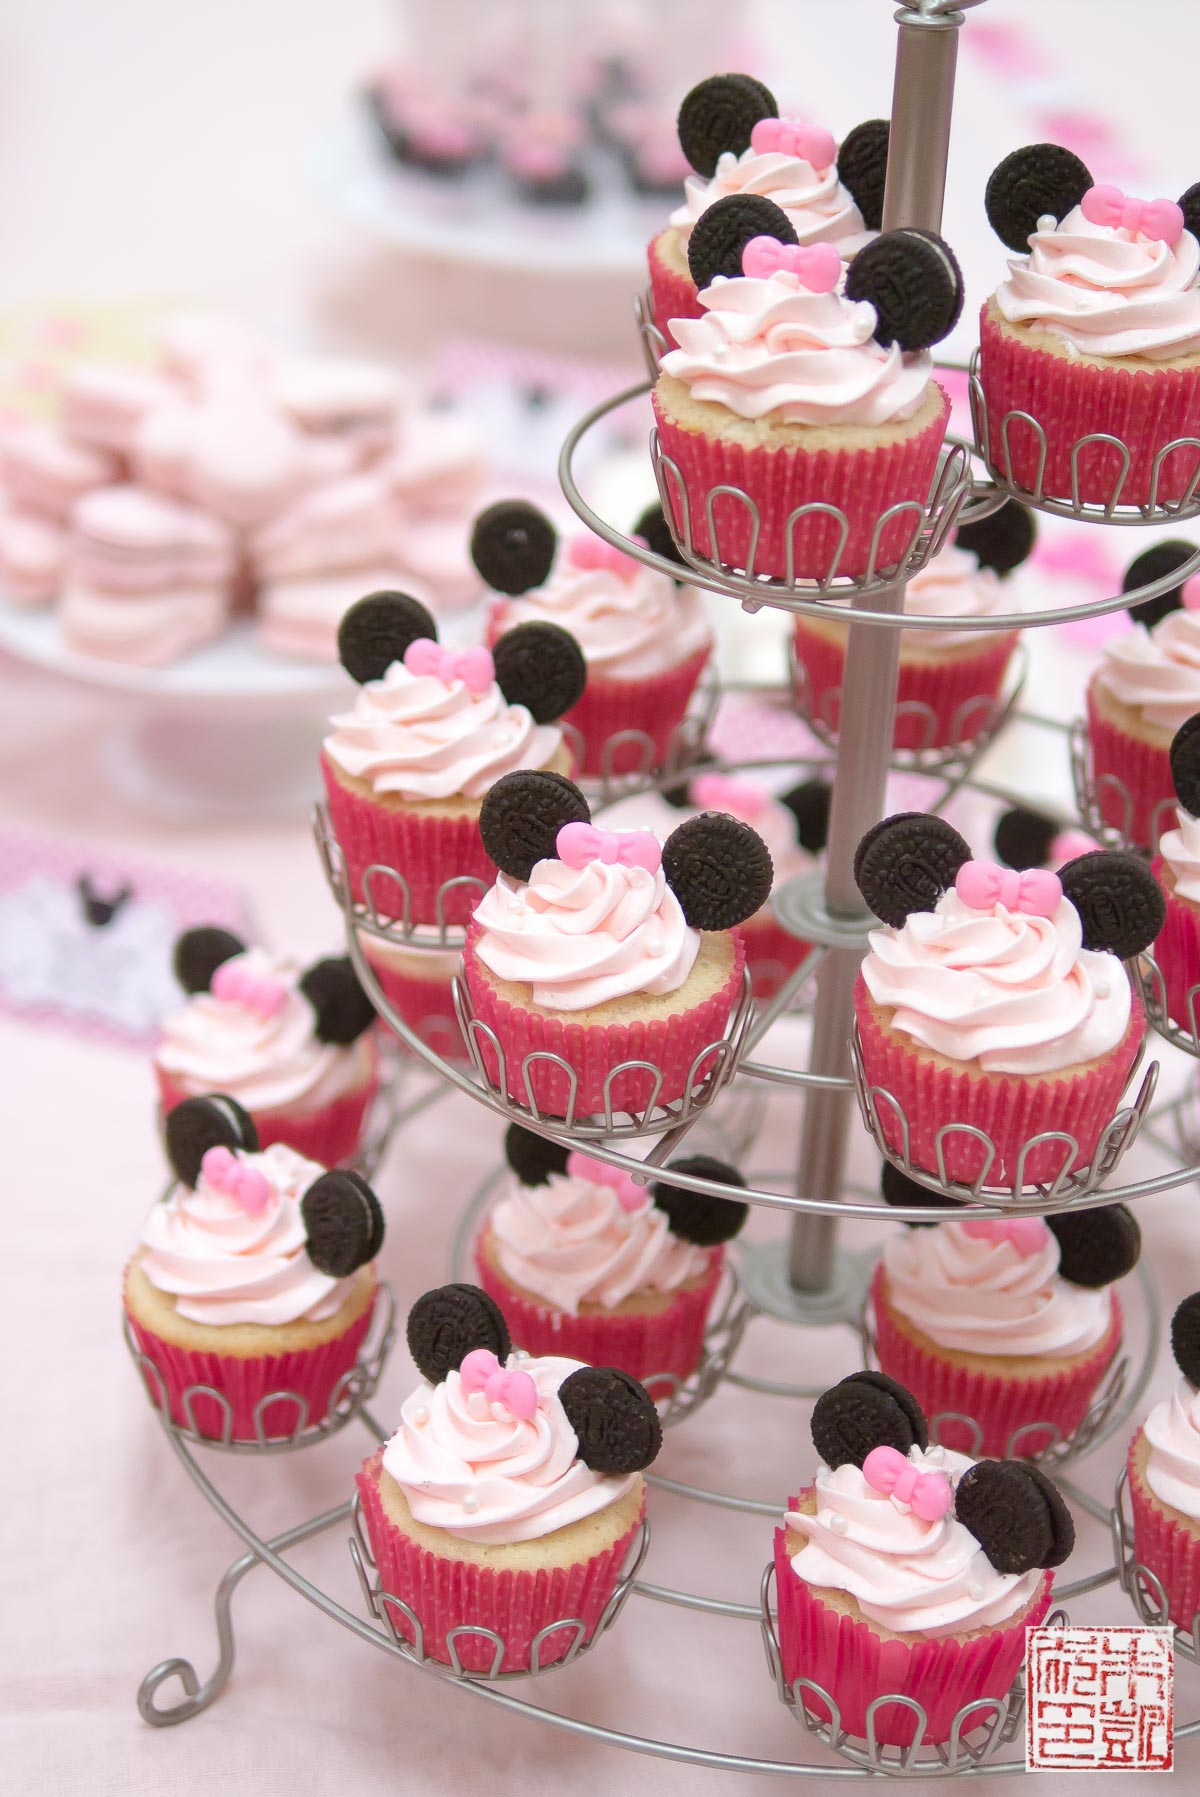 Images Of Party Cupcake : Minnie Mouse Cupcakes For A 3rd Birthday Party - Dessert First